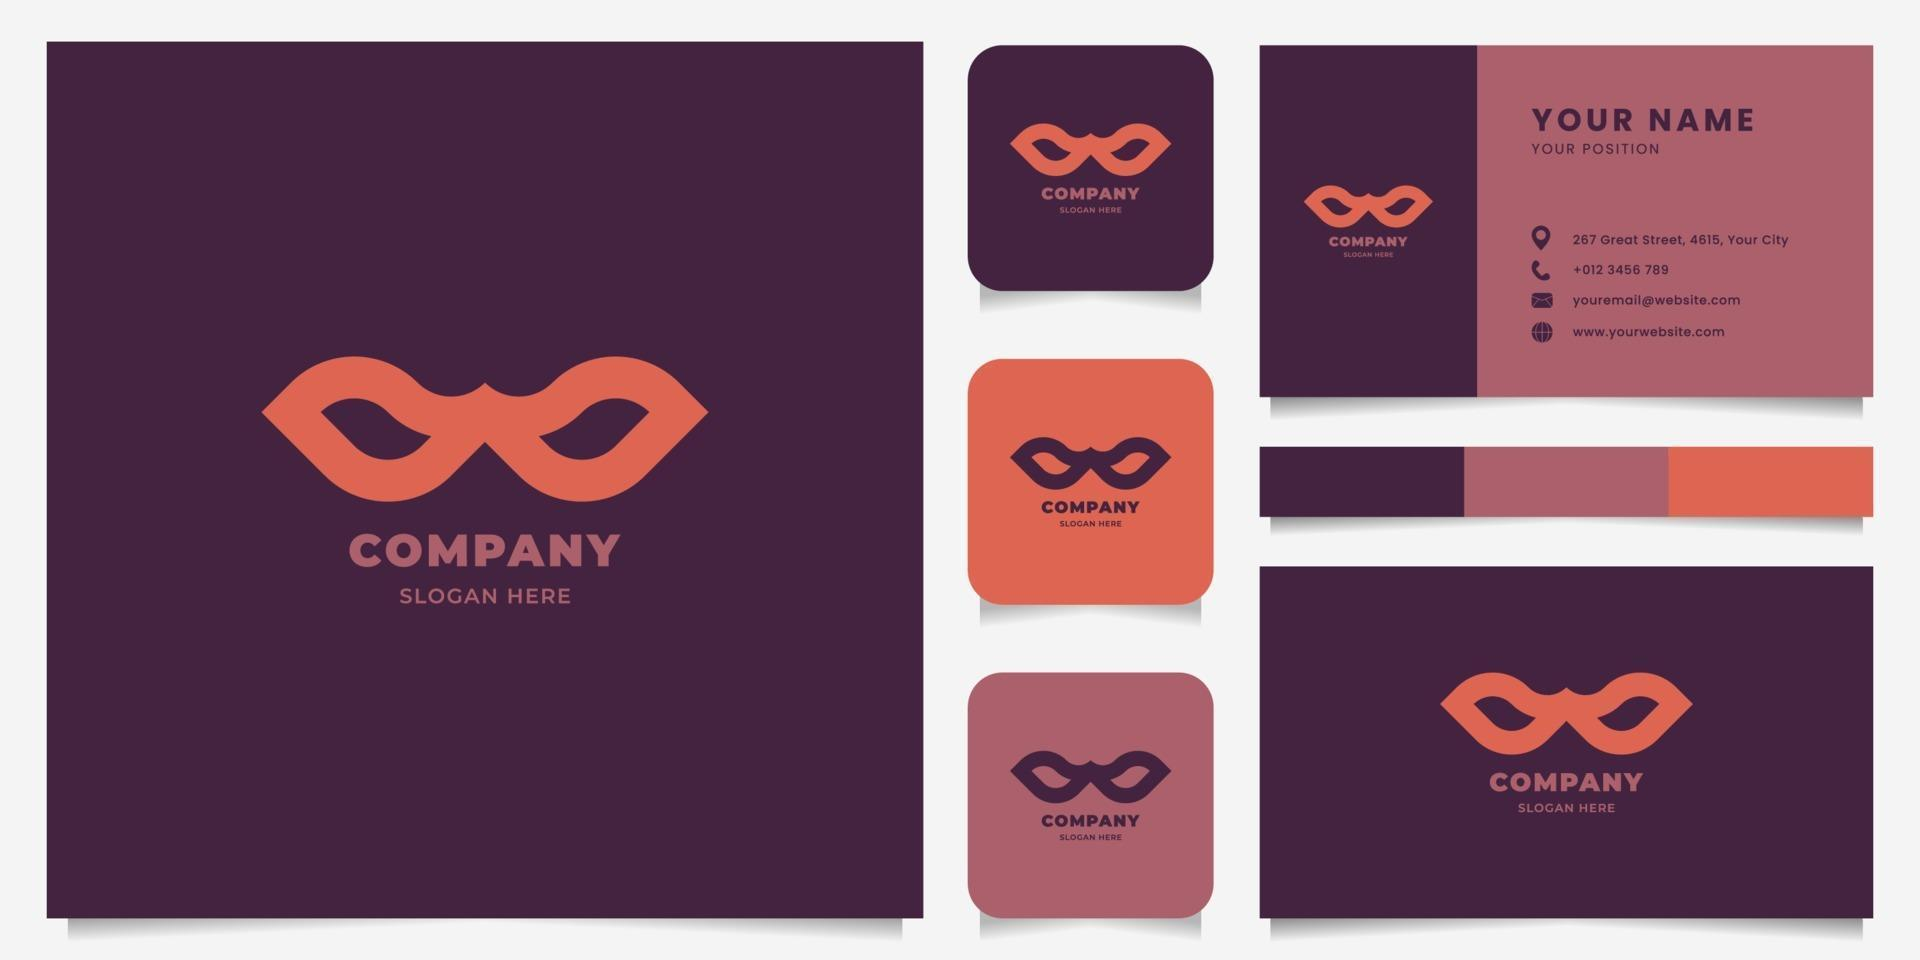 Simple and Minimalist Superhero Mask Logo with Business Card Template vector